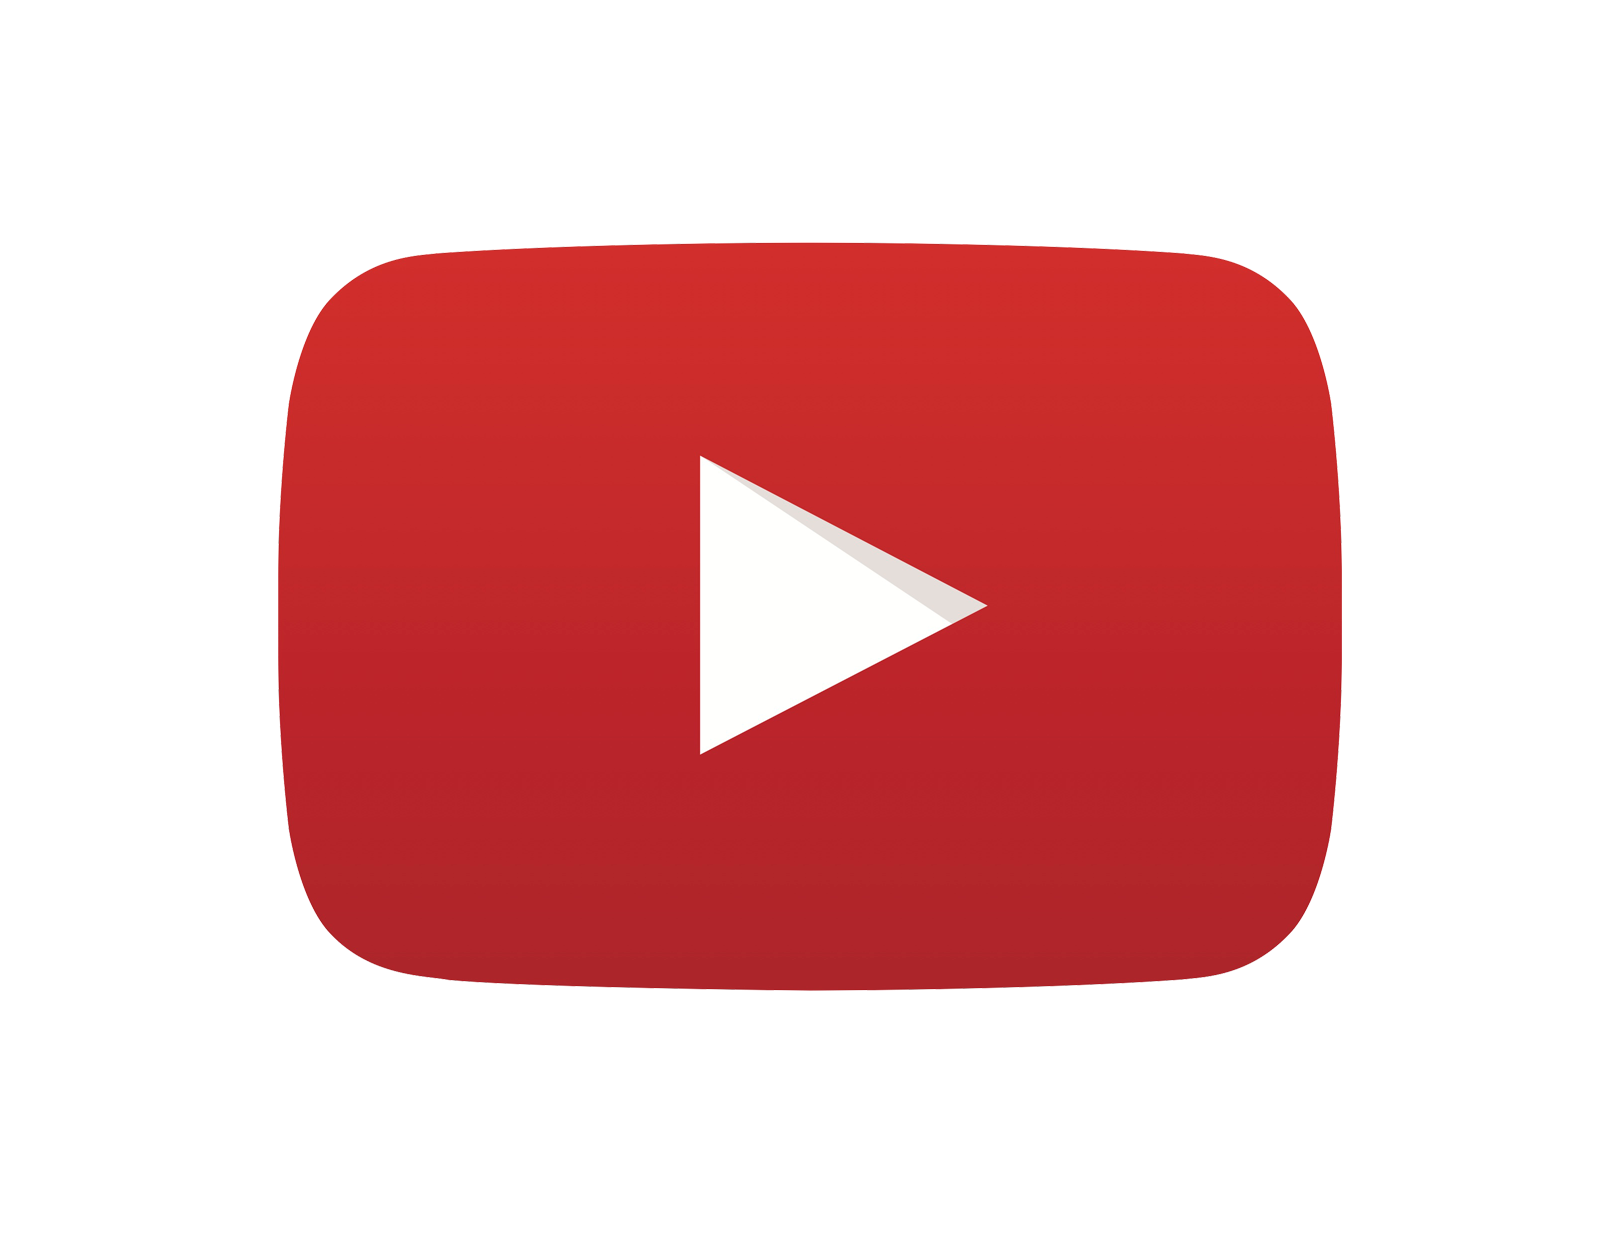 youtube_PNG15 (1).png